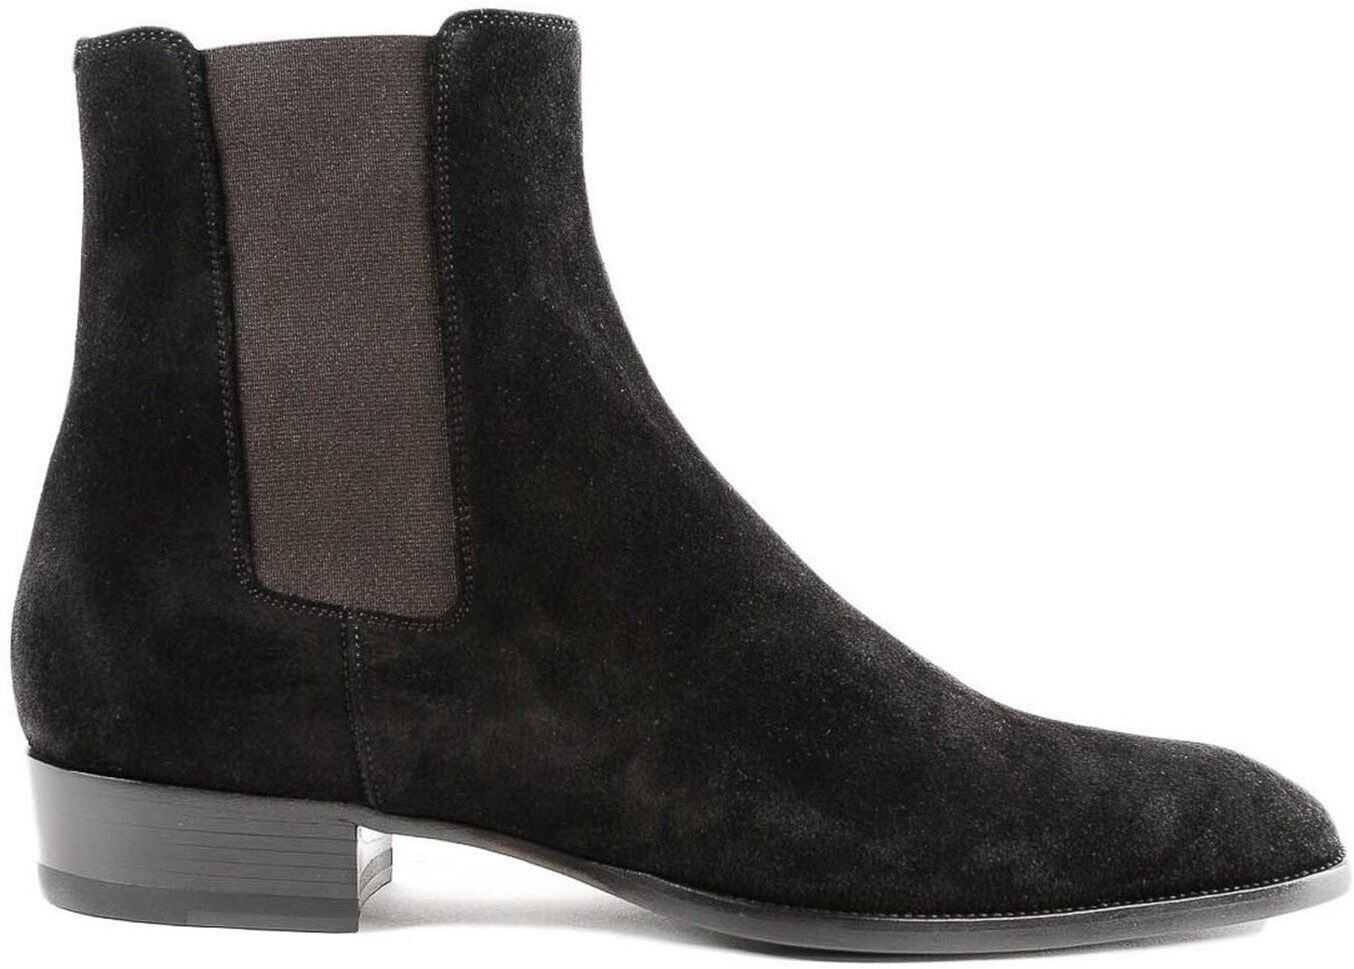 Wyatt 30 Suede Ankle Boots In Black